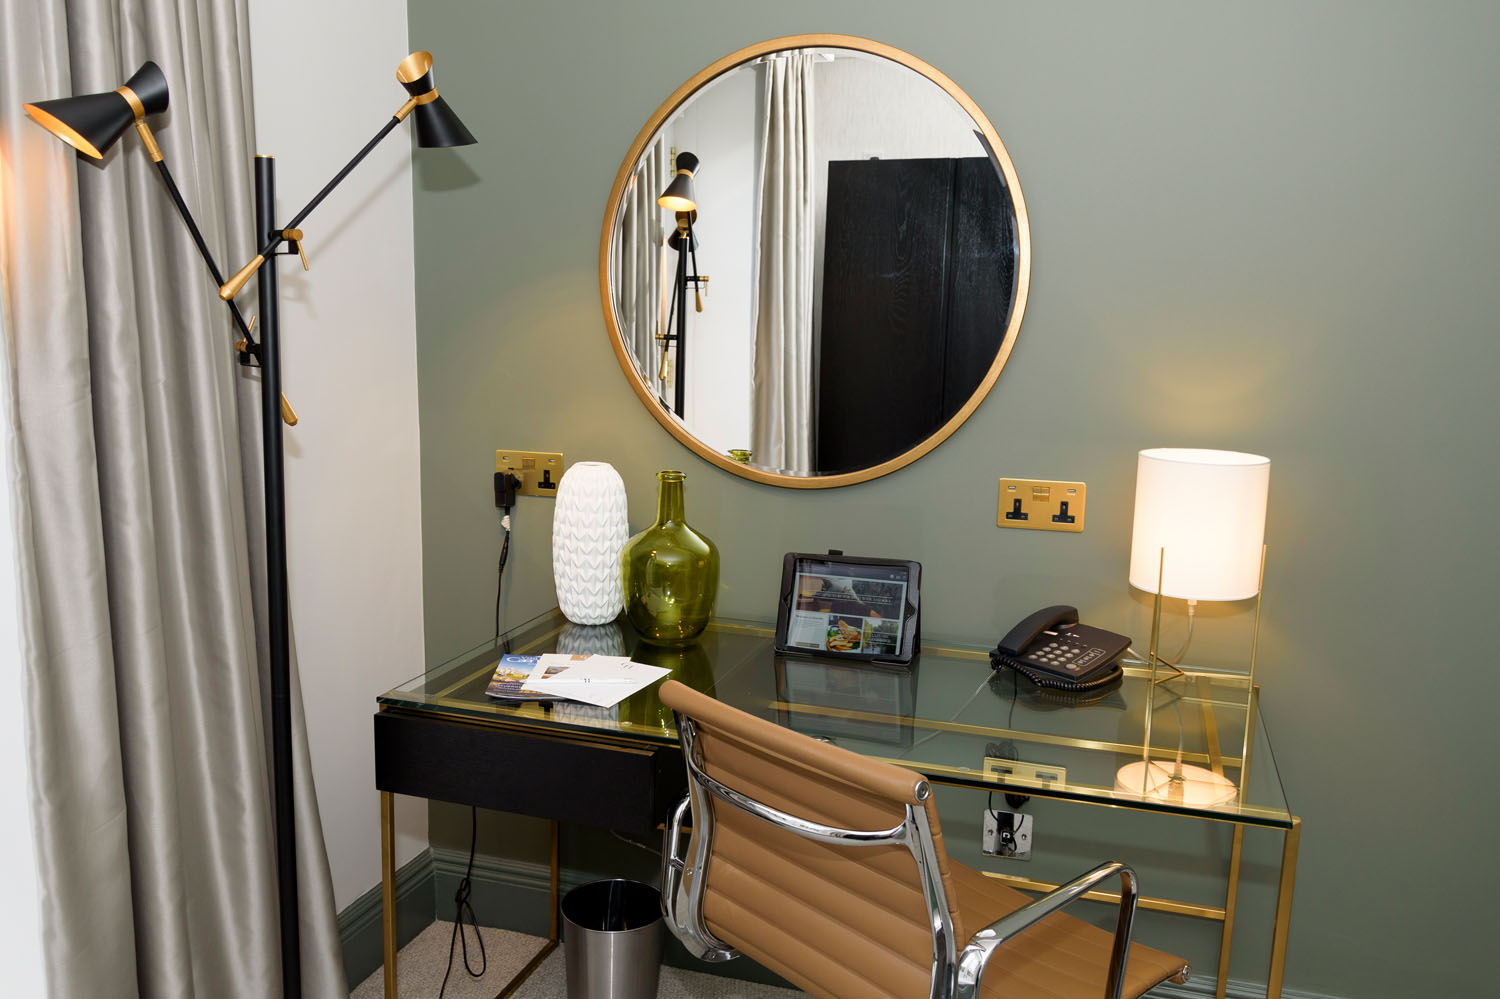 Desk and mirror in a bedroom at Gonville Hotel